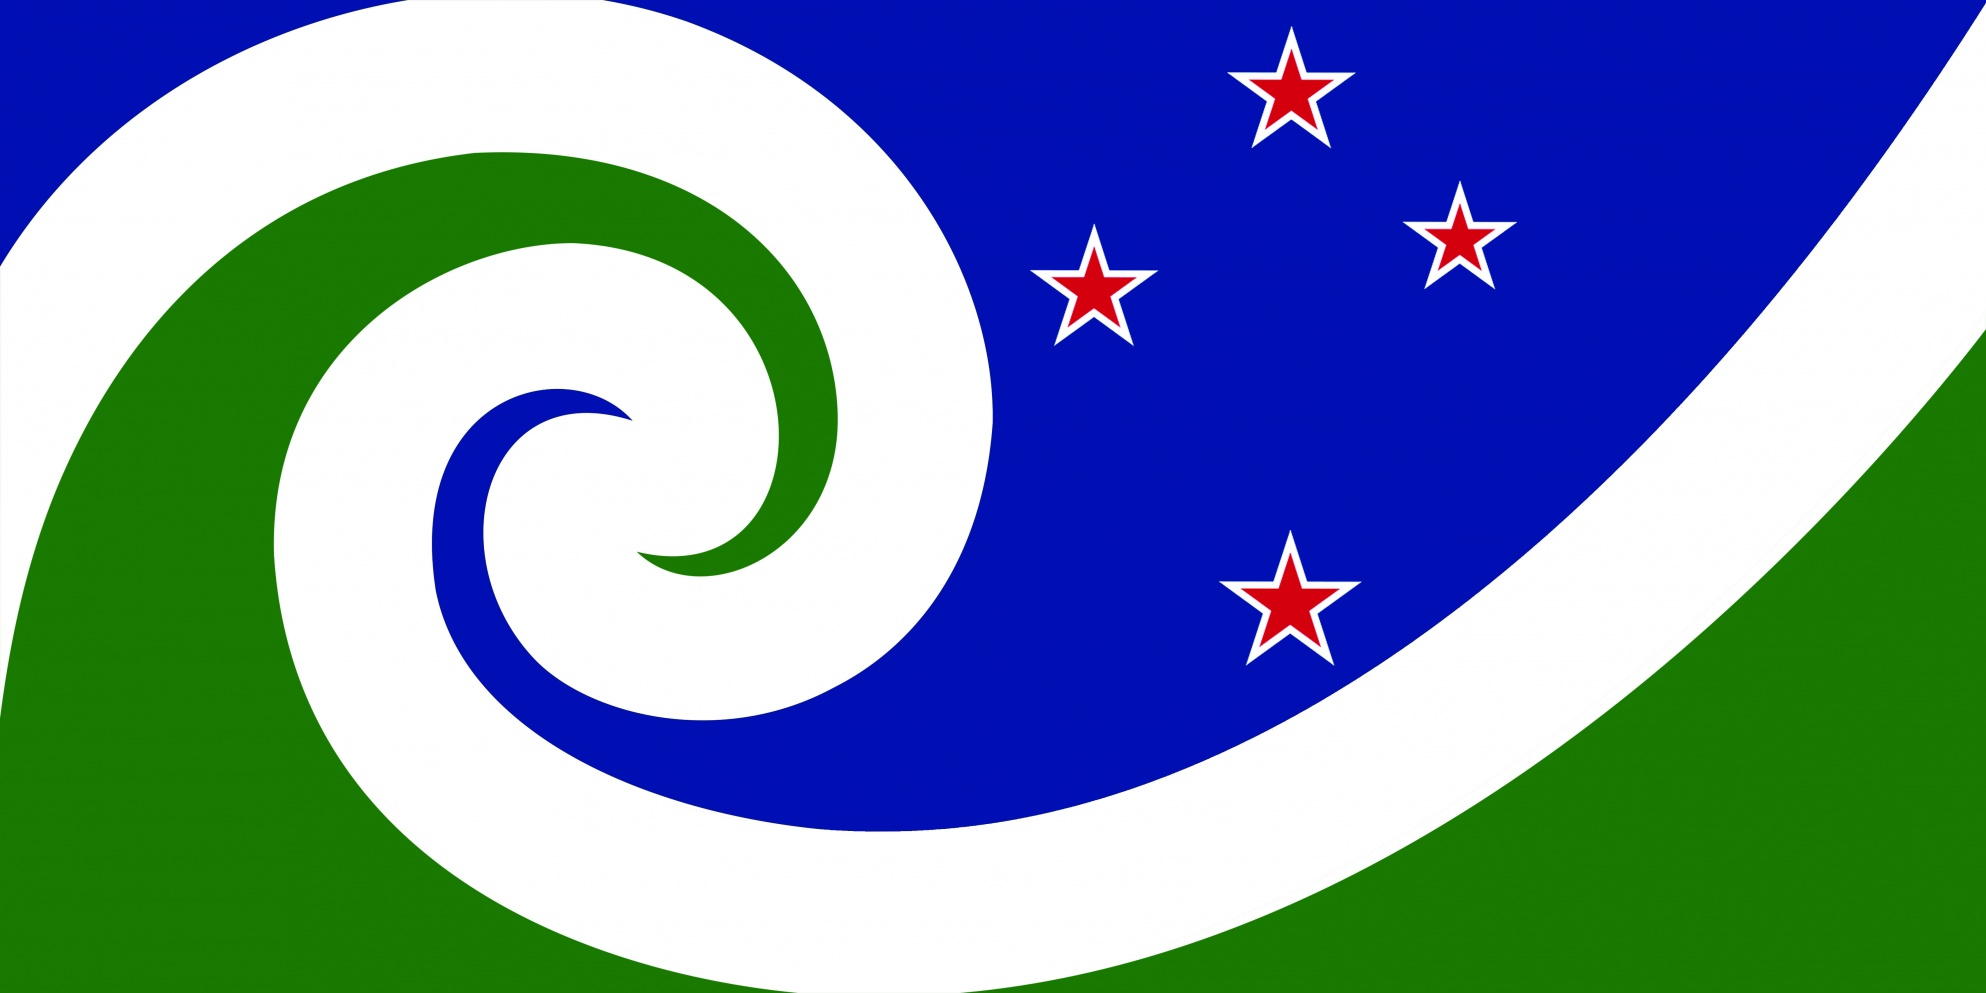 File:NZ flag design Manawa (Blue & Green) by Otis Frizzell